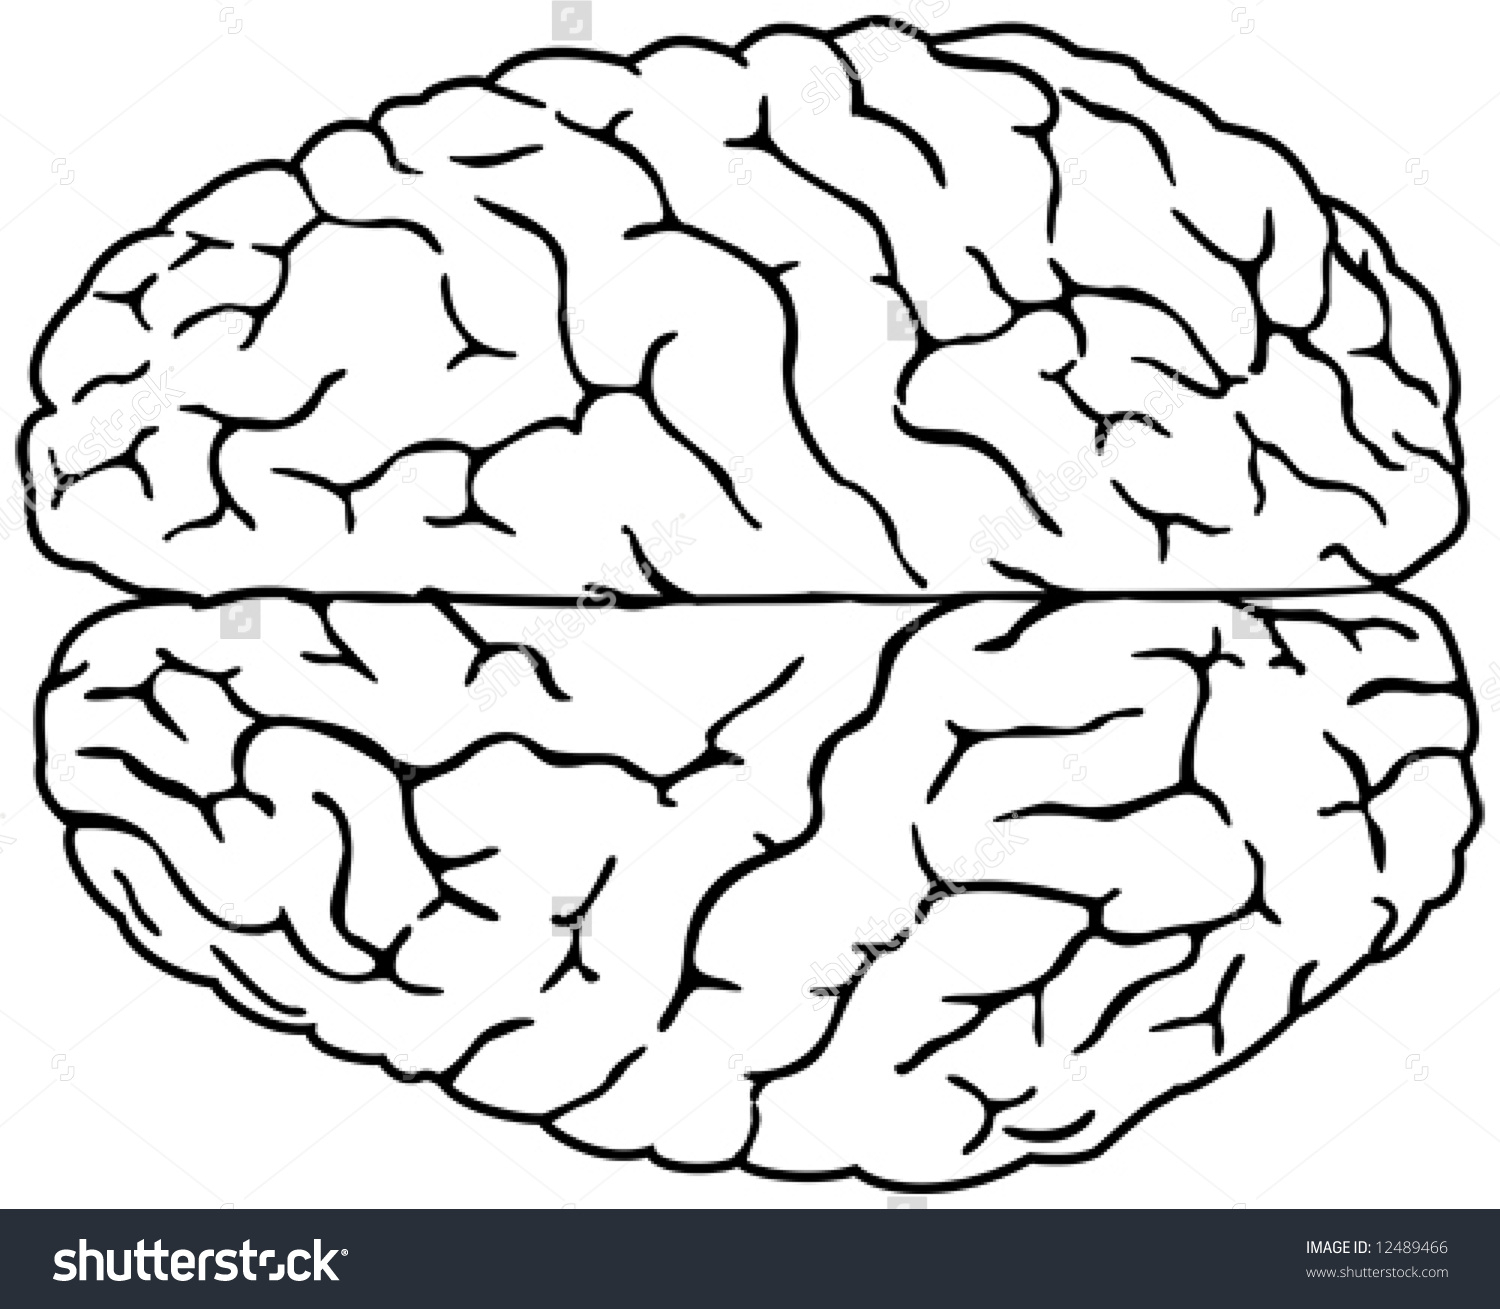 Simple Brain Drawing   Free download on ClipArtMag